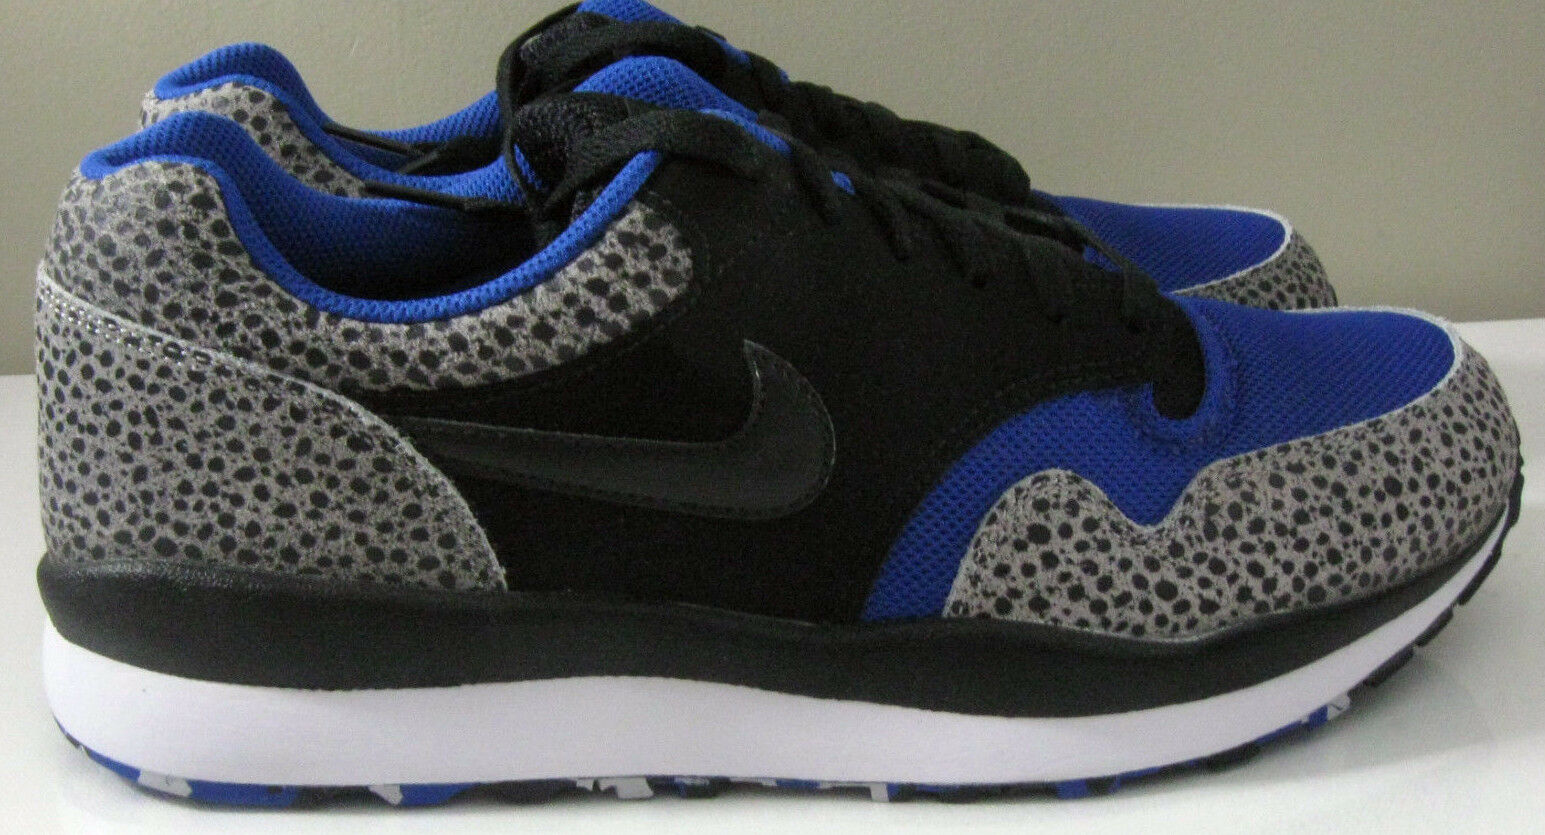 Nike Air Safari LE Size 11 Grey Blue Black Elephant Mens Running Shoe 371740-040